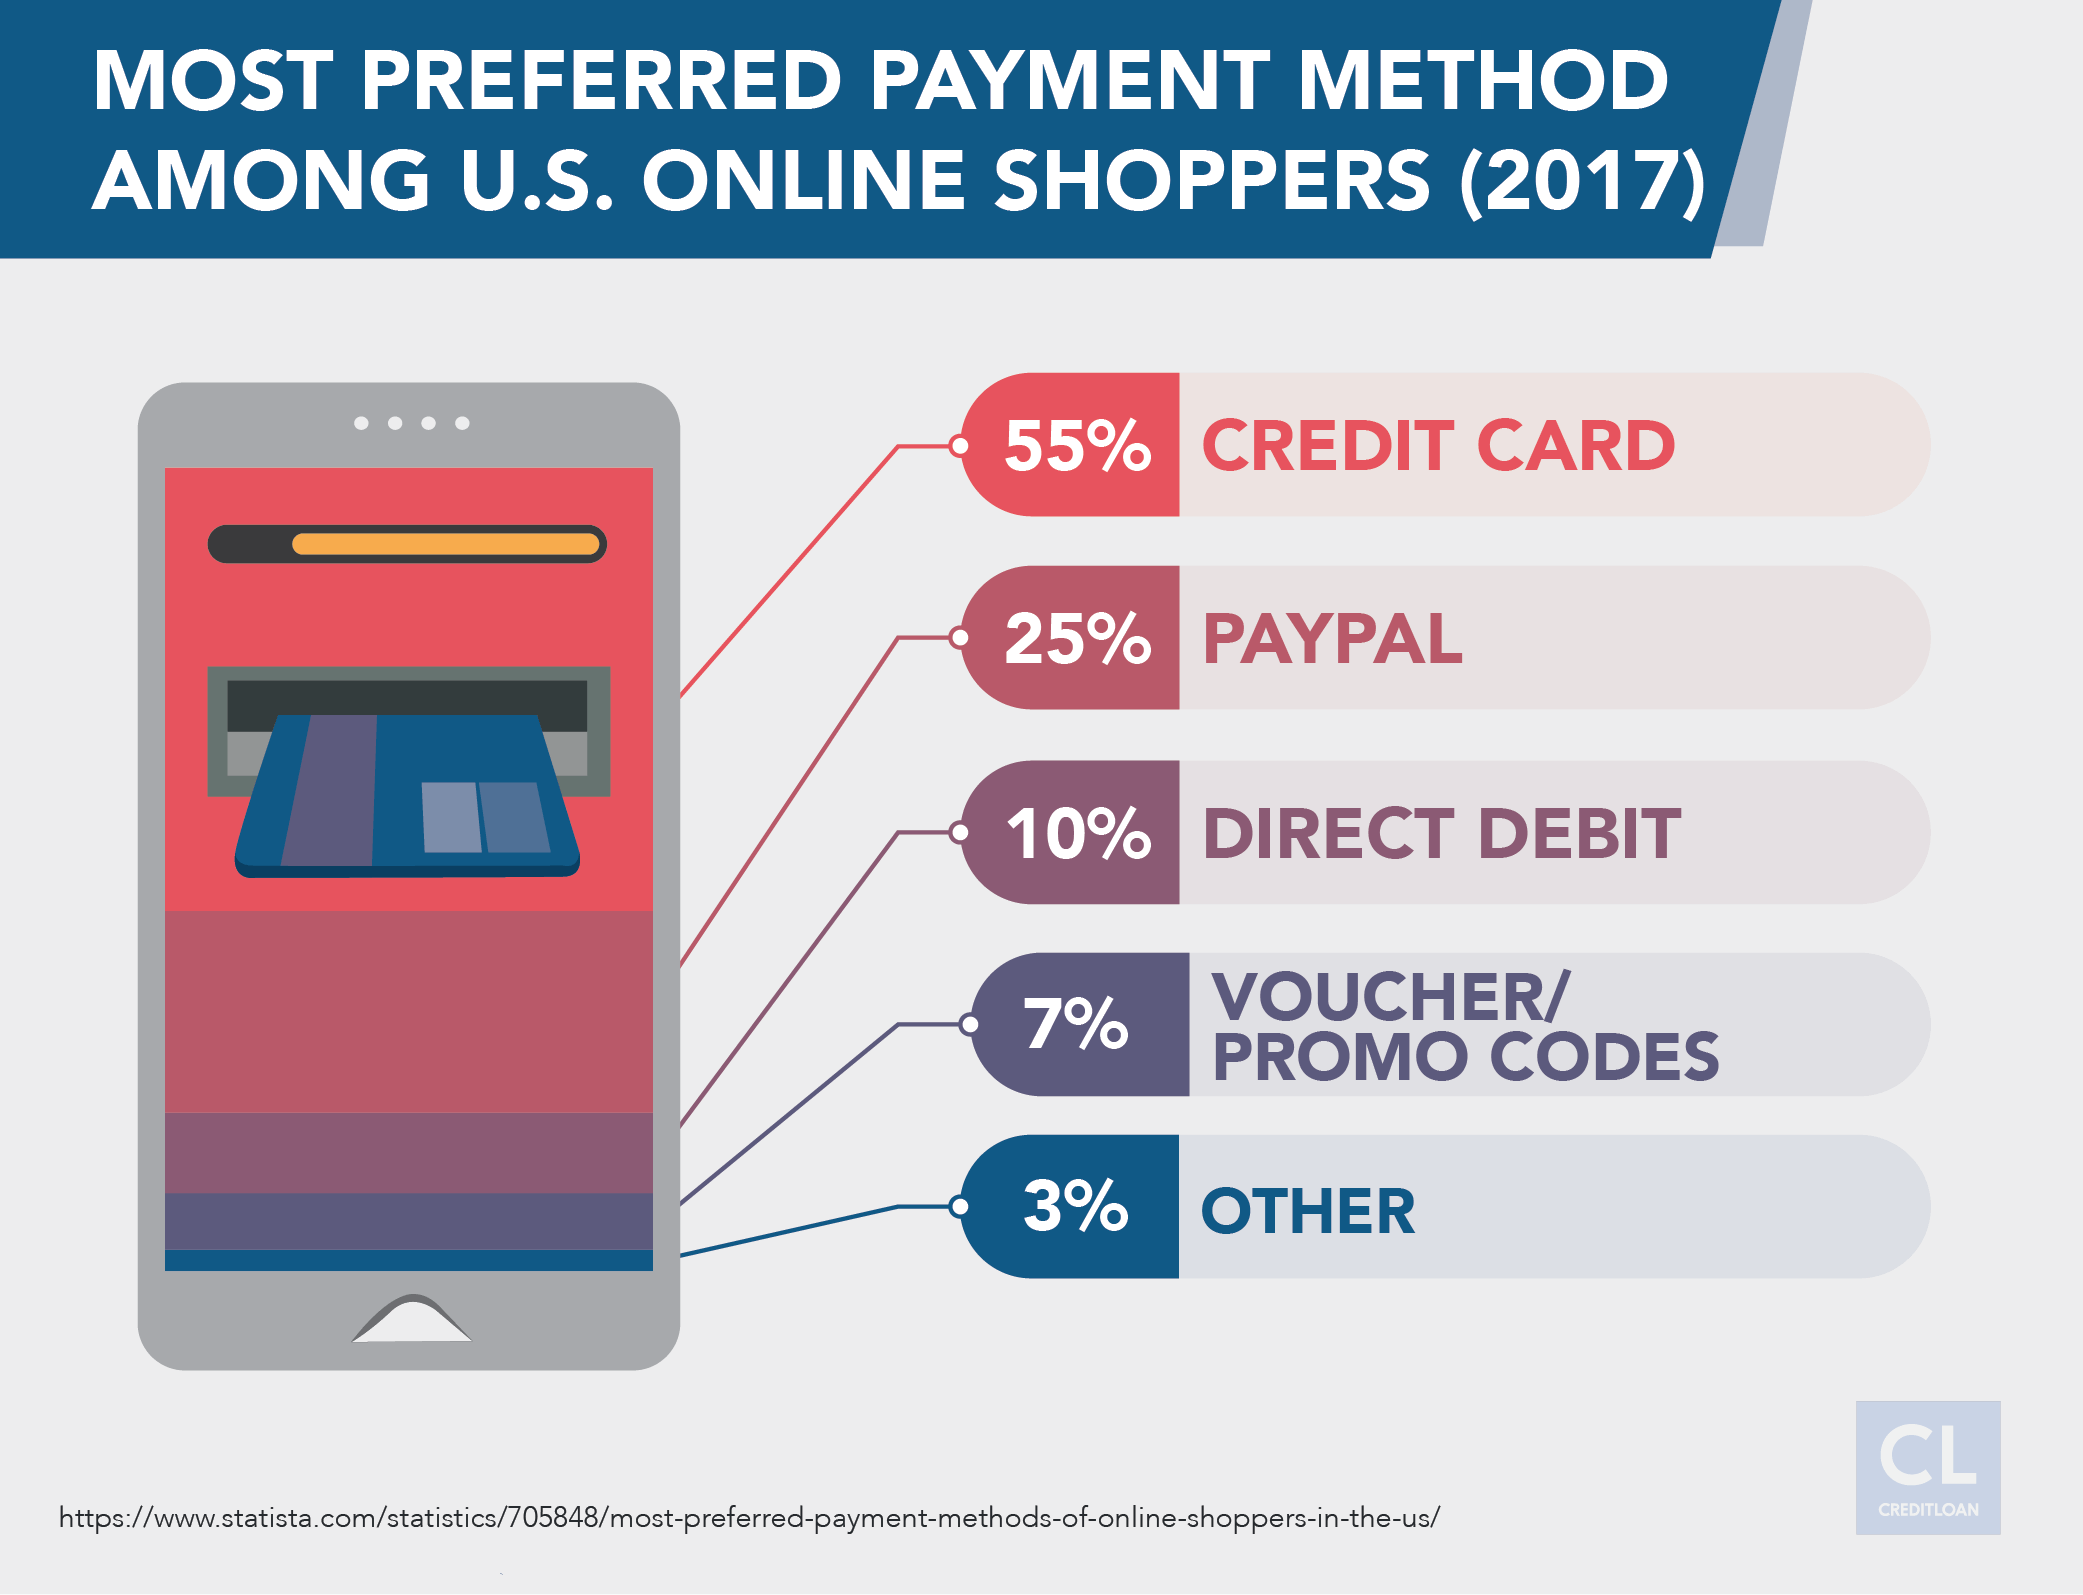 Most Preferred Payment Method Among U.S. Online Shoppers